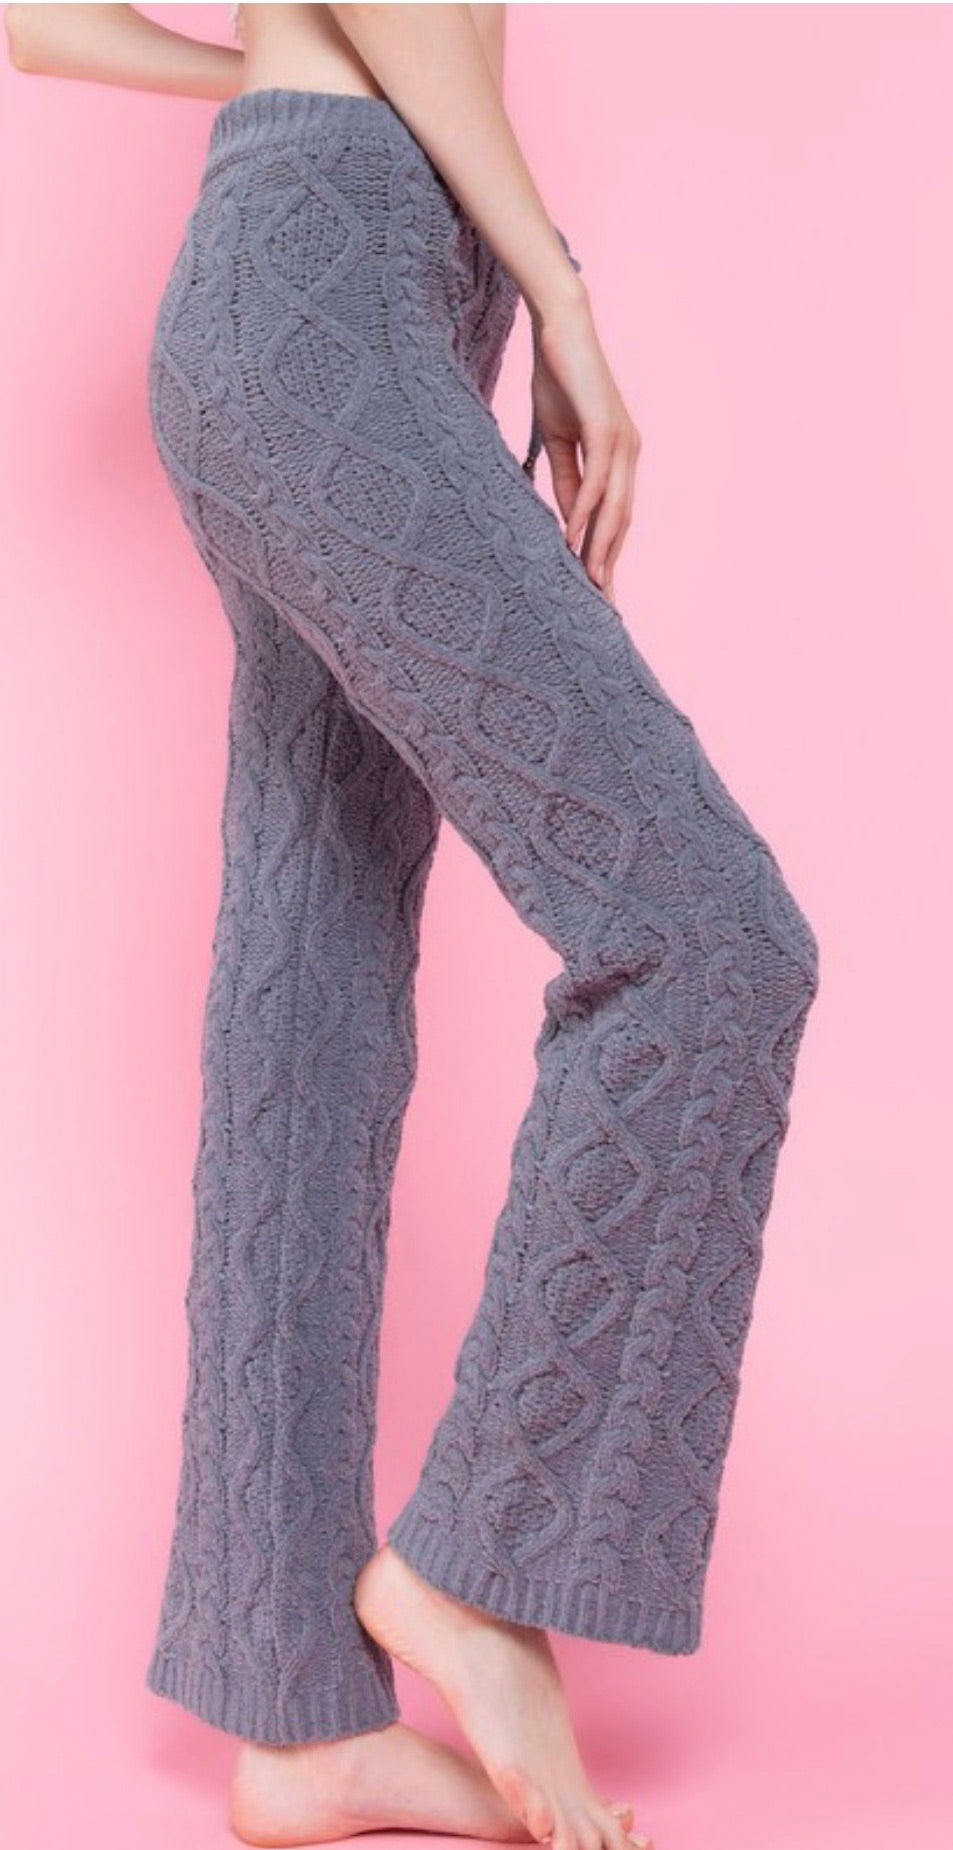 Berber Cable Knit Fleece Drawstring Waistband Pants - Cheeky Cactus